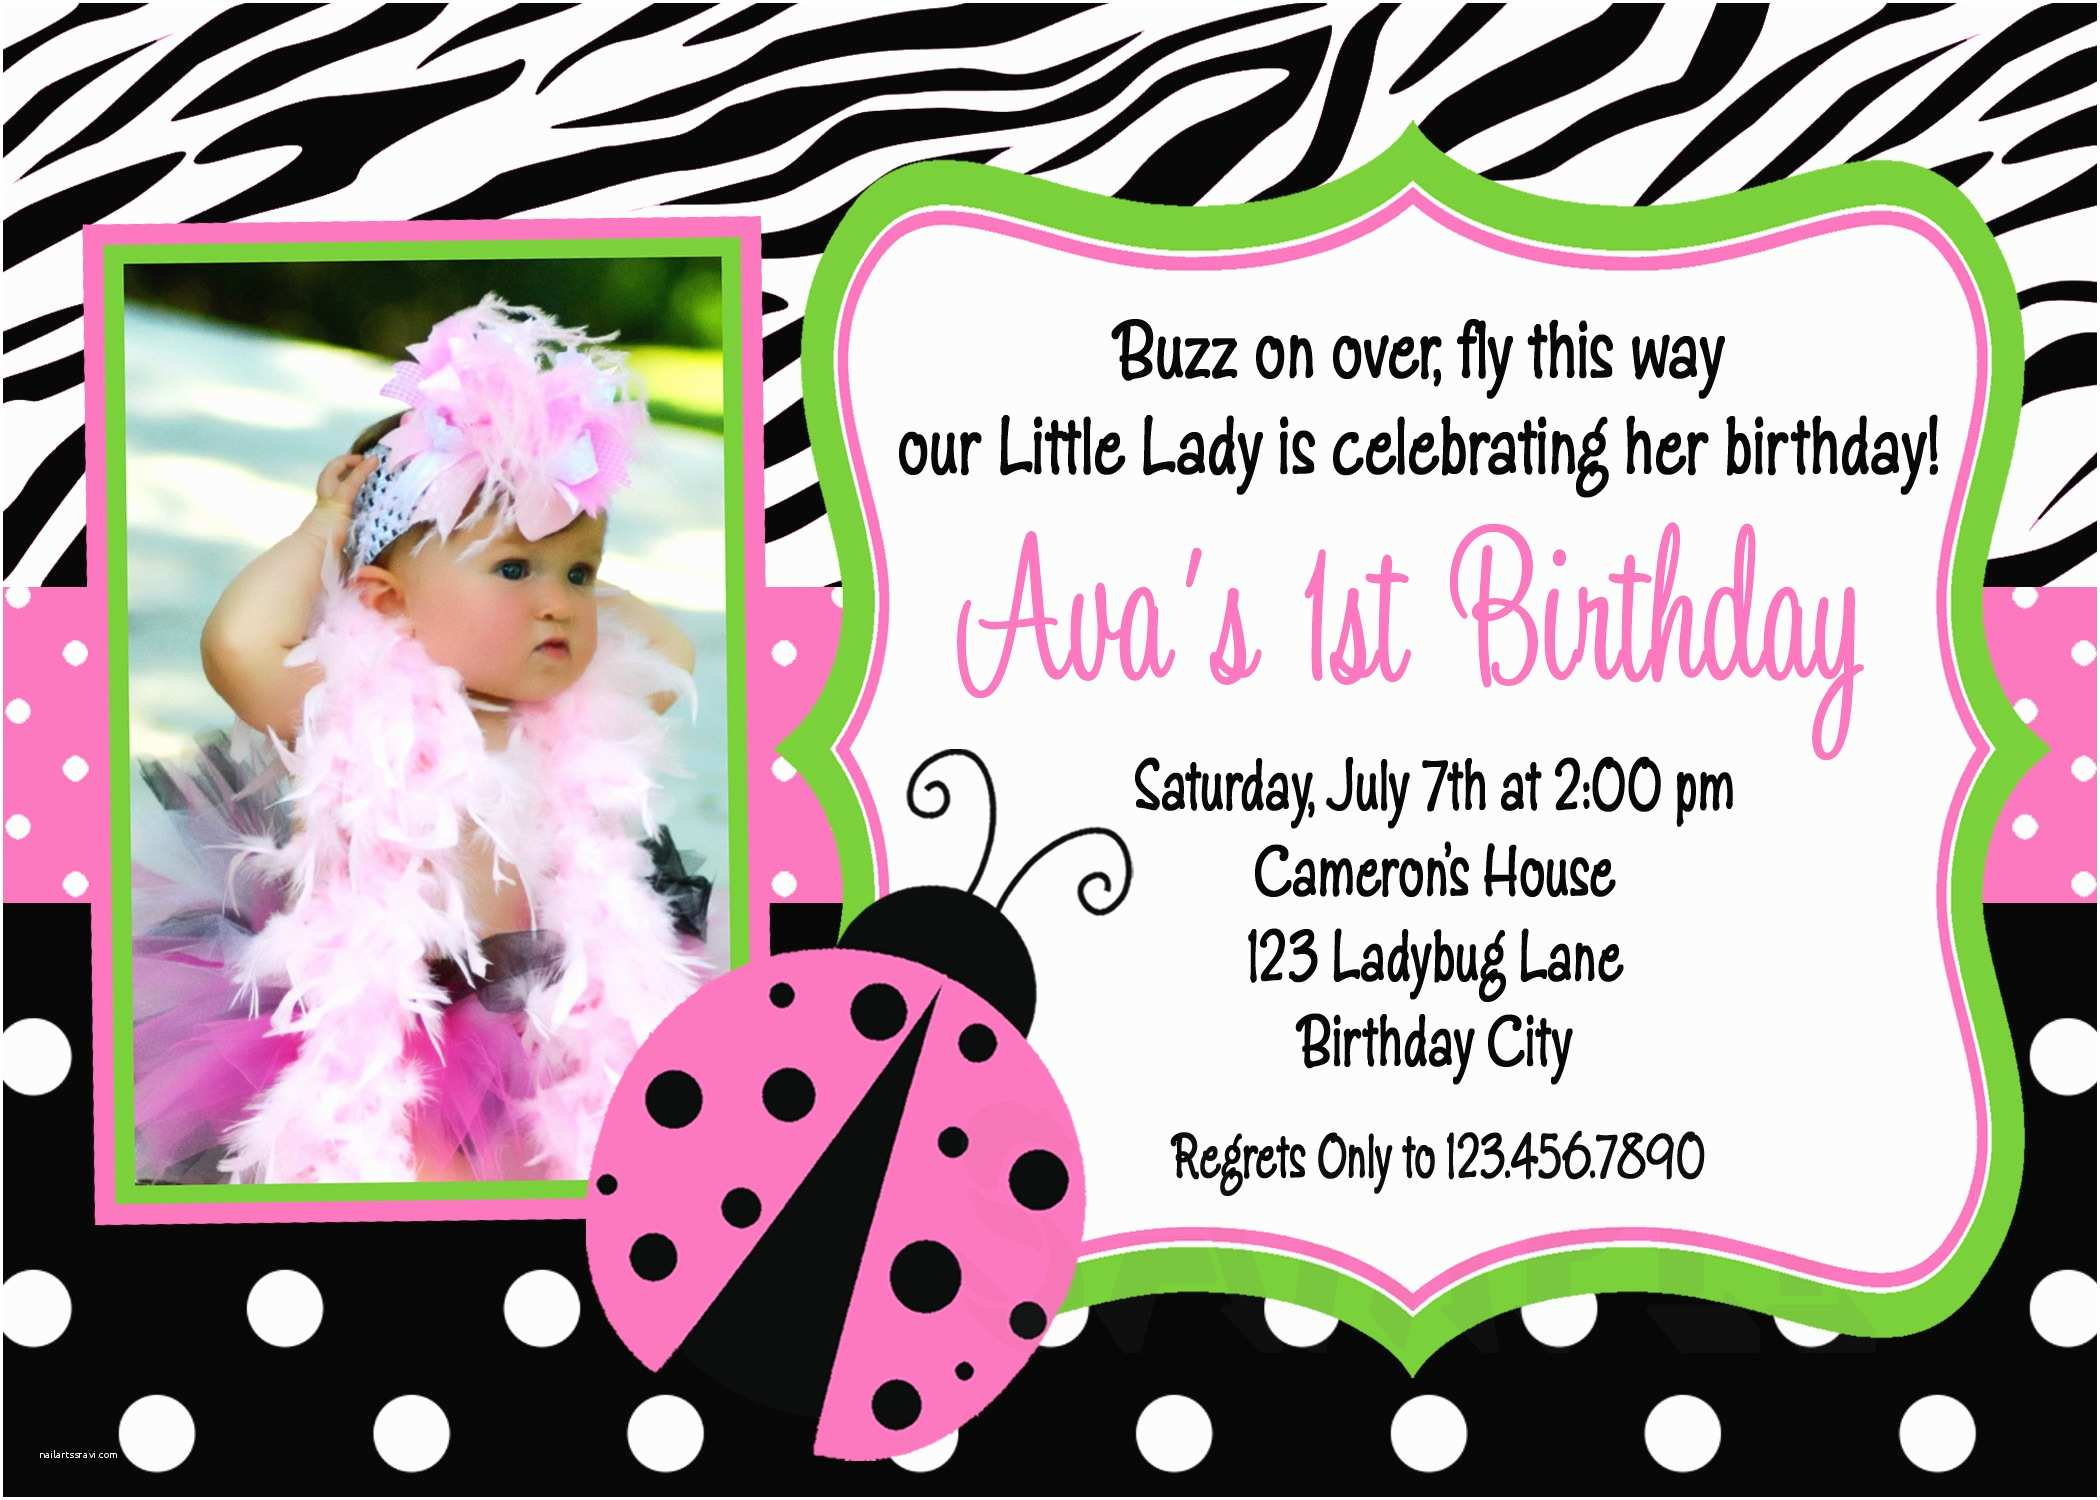 Ladybug Birthday Invitations Printable Birthday Invitations Ladybug First Party Pink